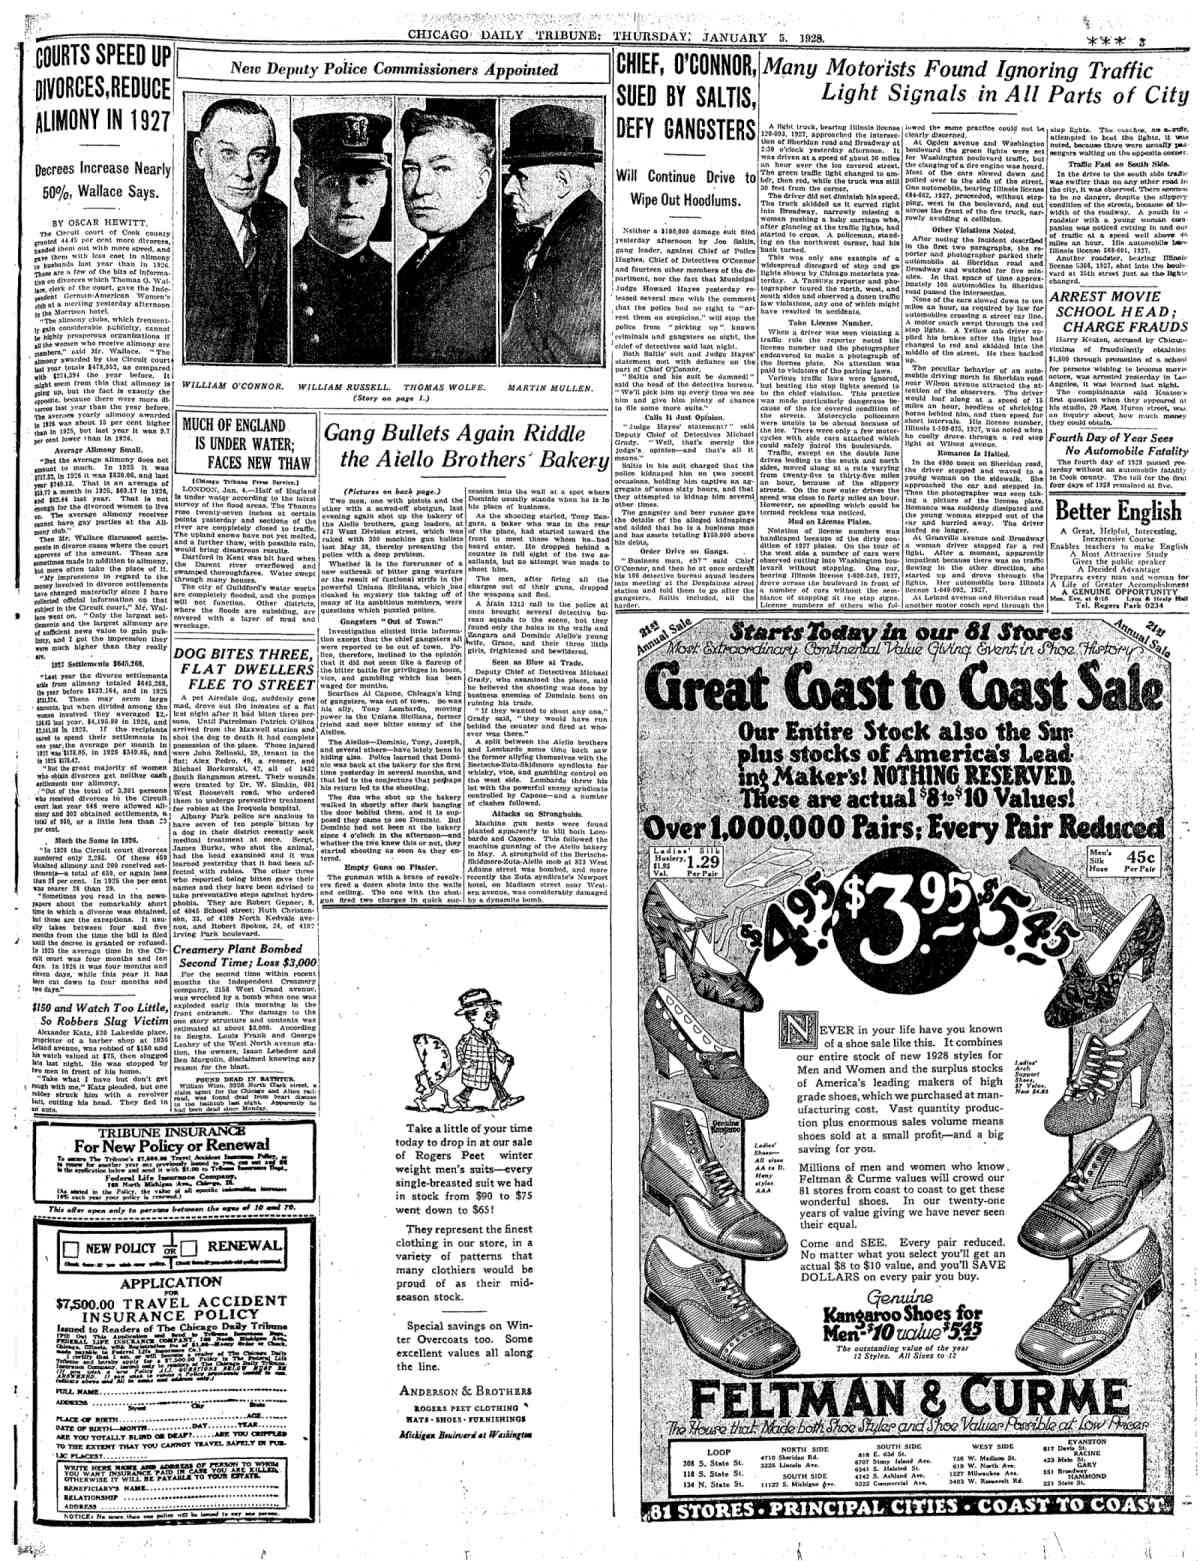 January 5, 1928 - Gang Bullets Again Riddle the Aiello Brothers Bakery | Chicago Tribune Archive